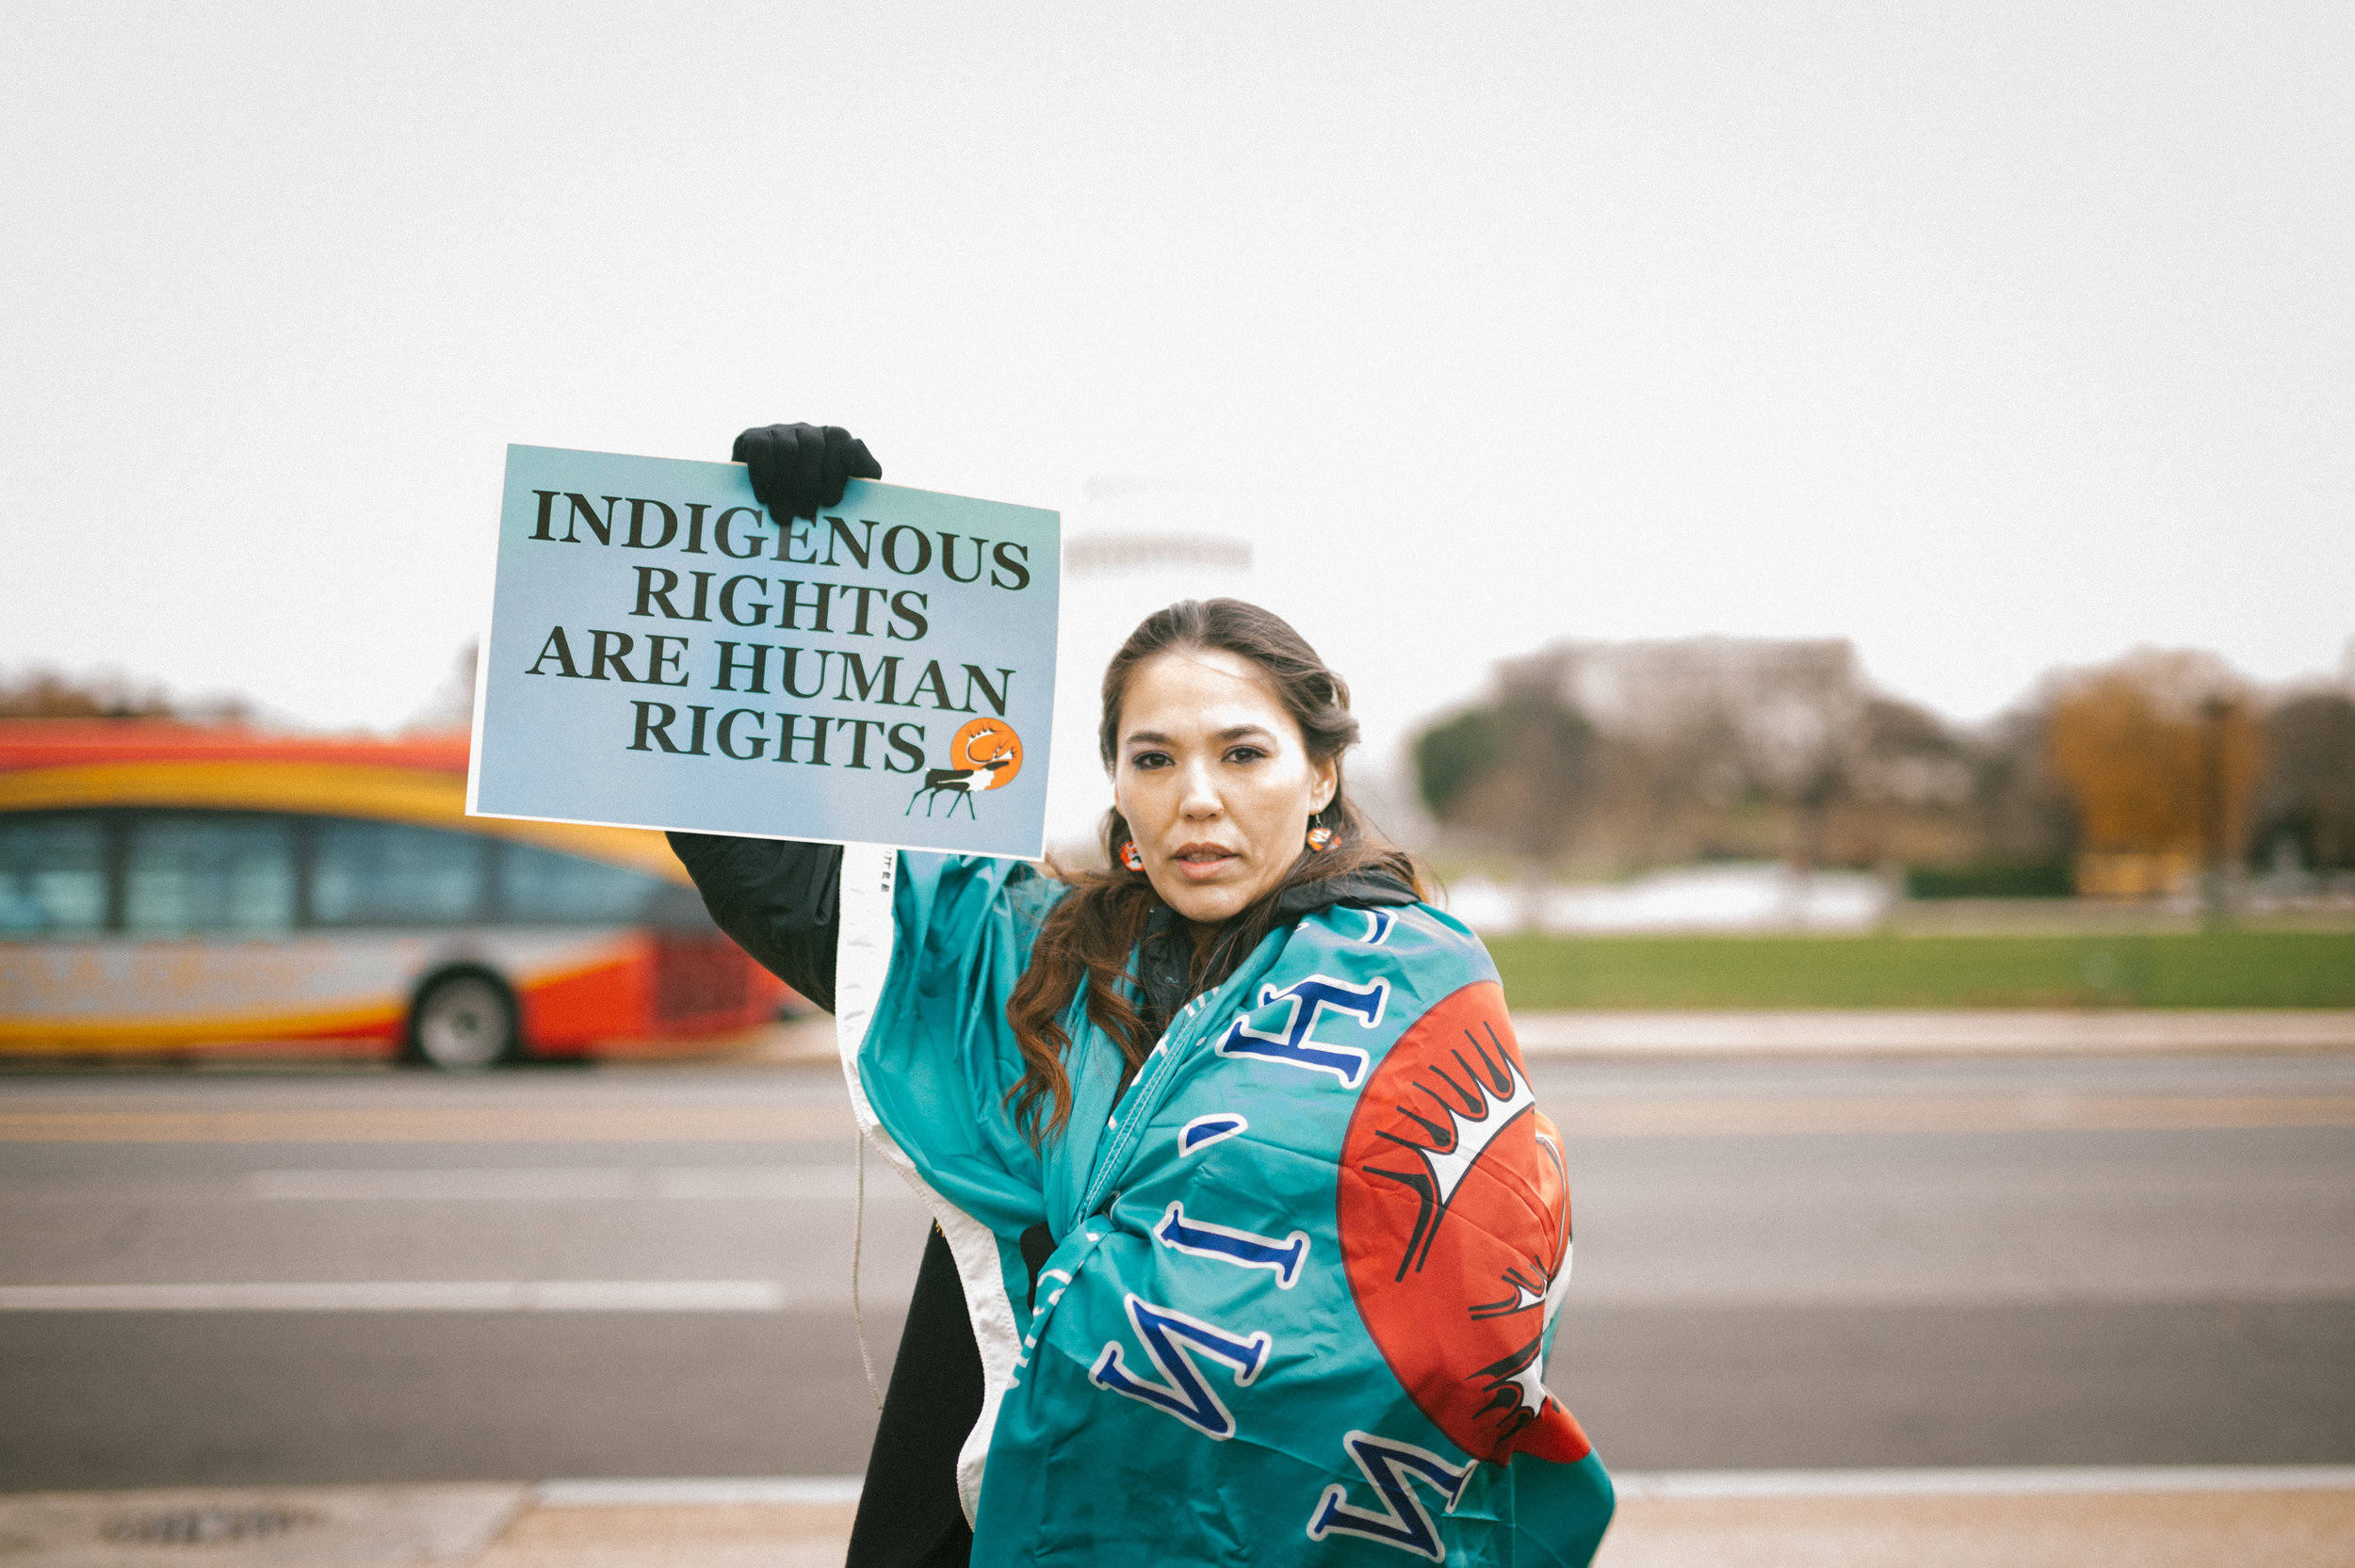 Bernadette Demientieff of the Gwich'in Steering Committee at a Prayer Action in Washington D.C.. Photo courtesy: Dylan McLaughlin, Indigenous Rising Media.